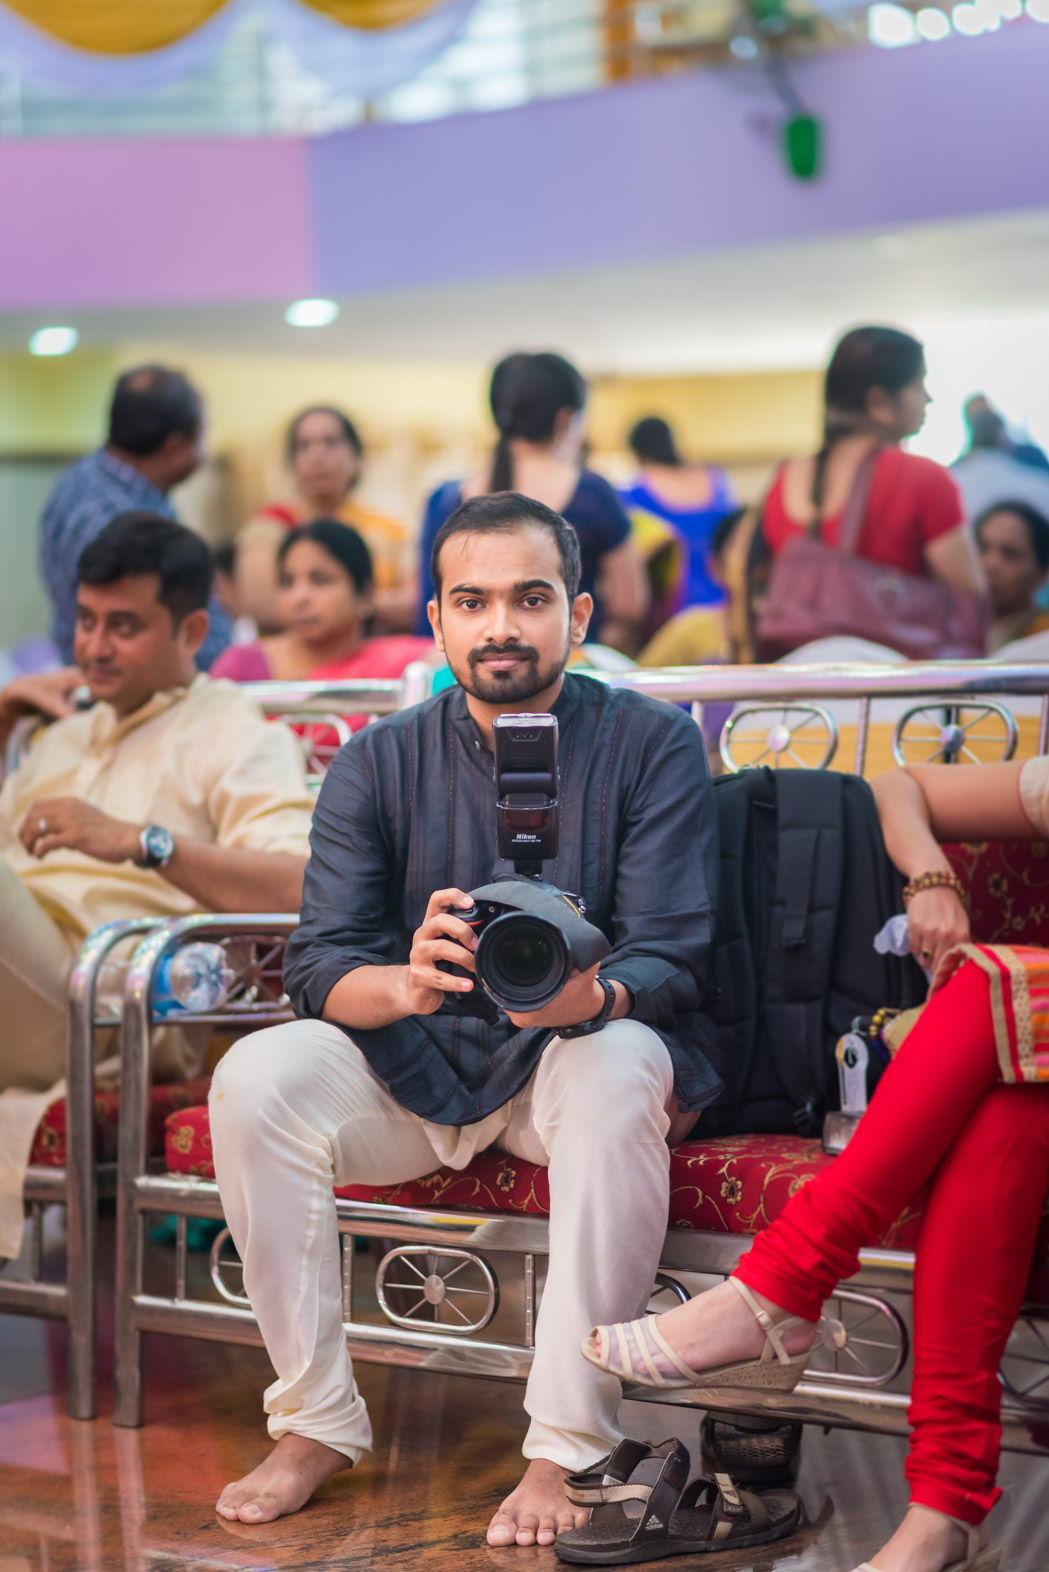 WhatKnot-Candid-Wedding-Photography-Mumbai-Bangalore-58